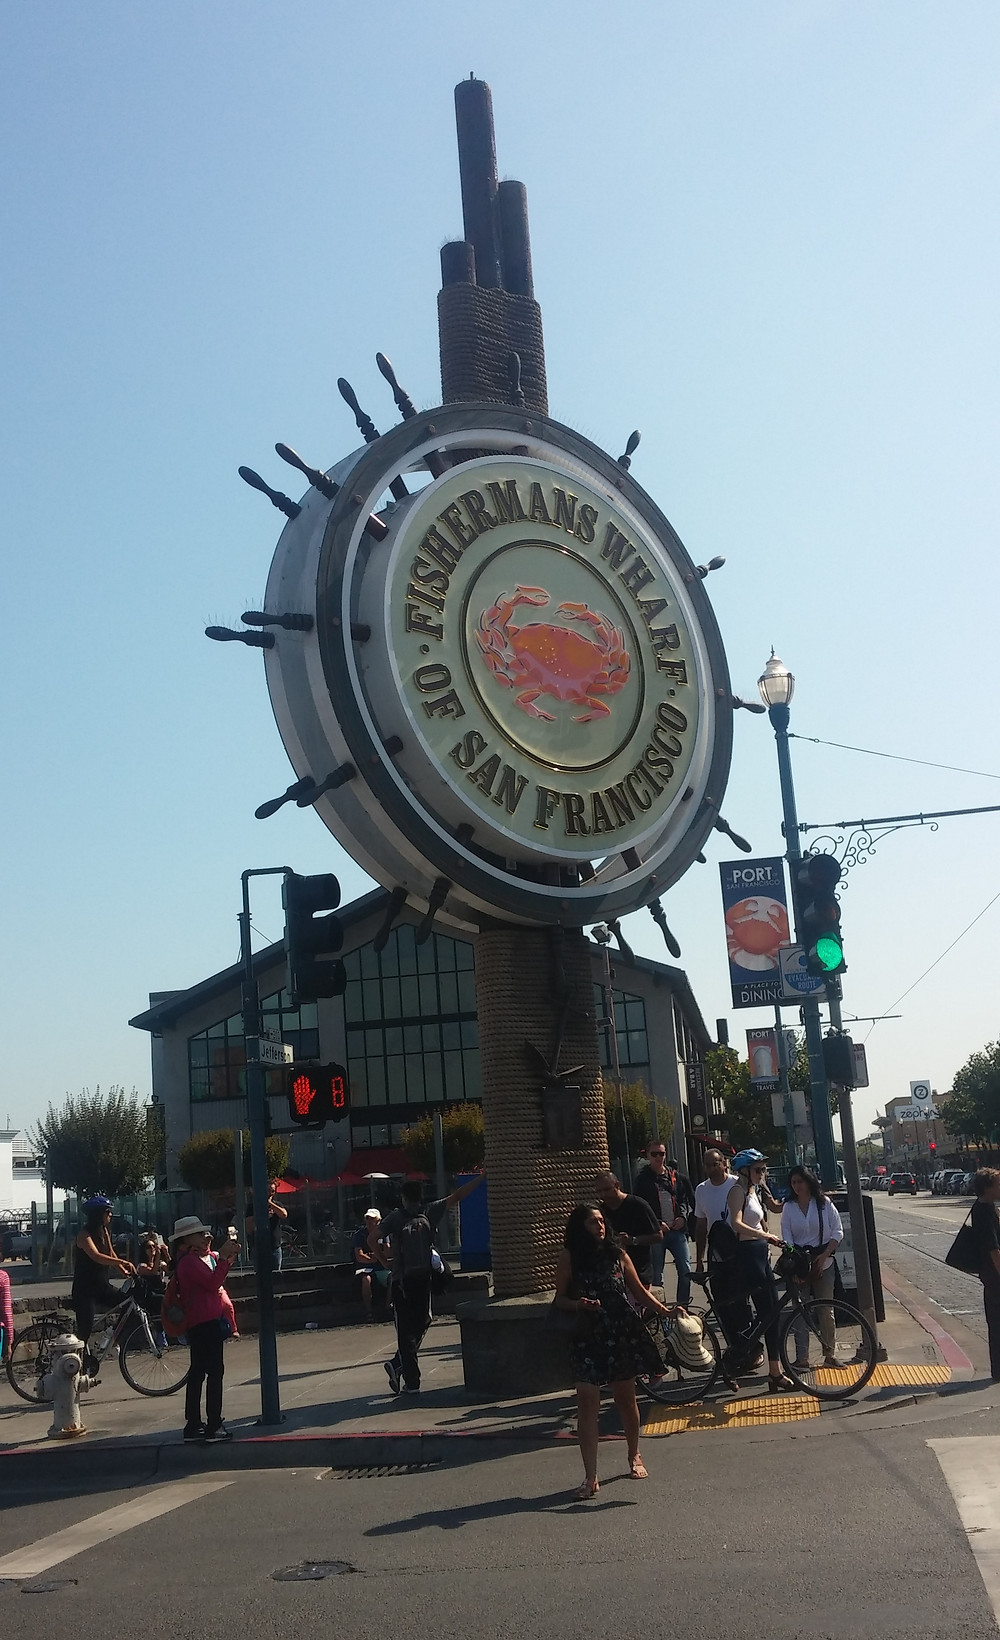 Fisherman's Warf in San Francisco